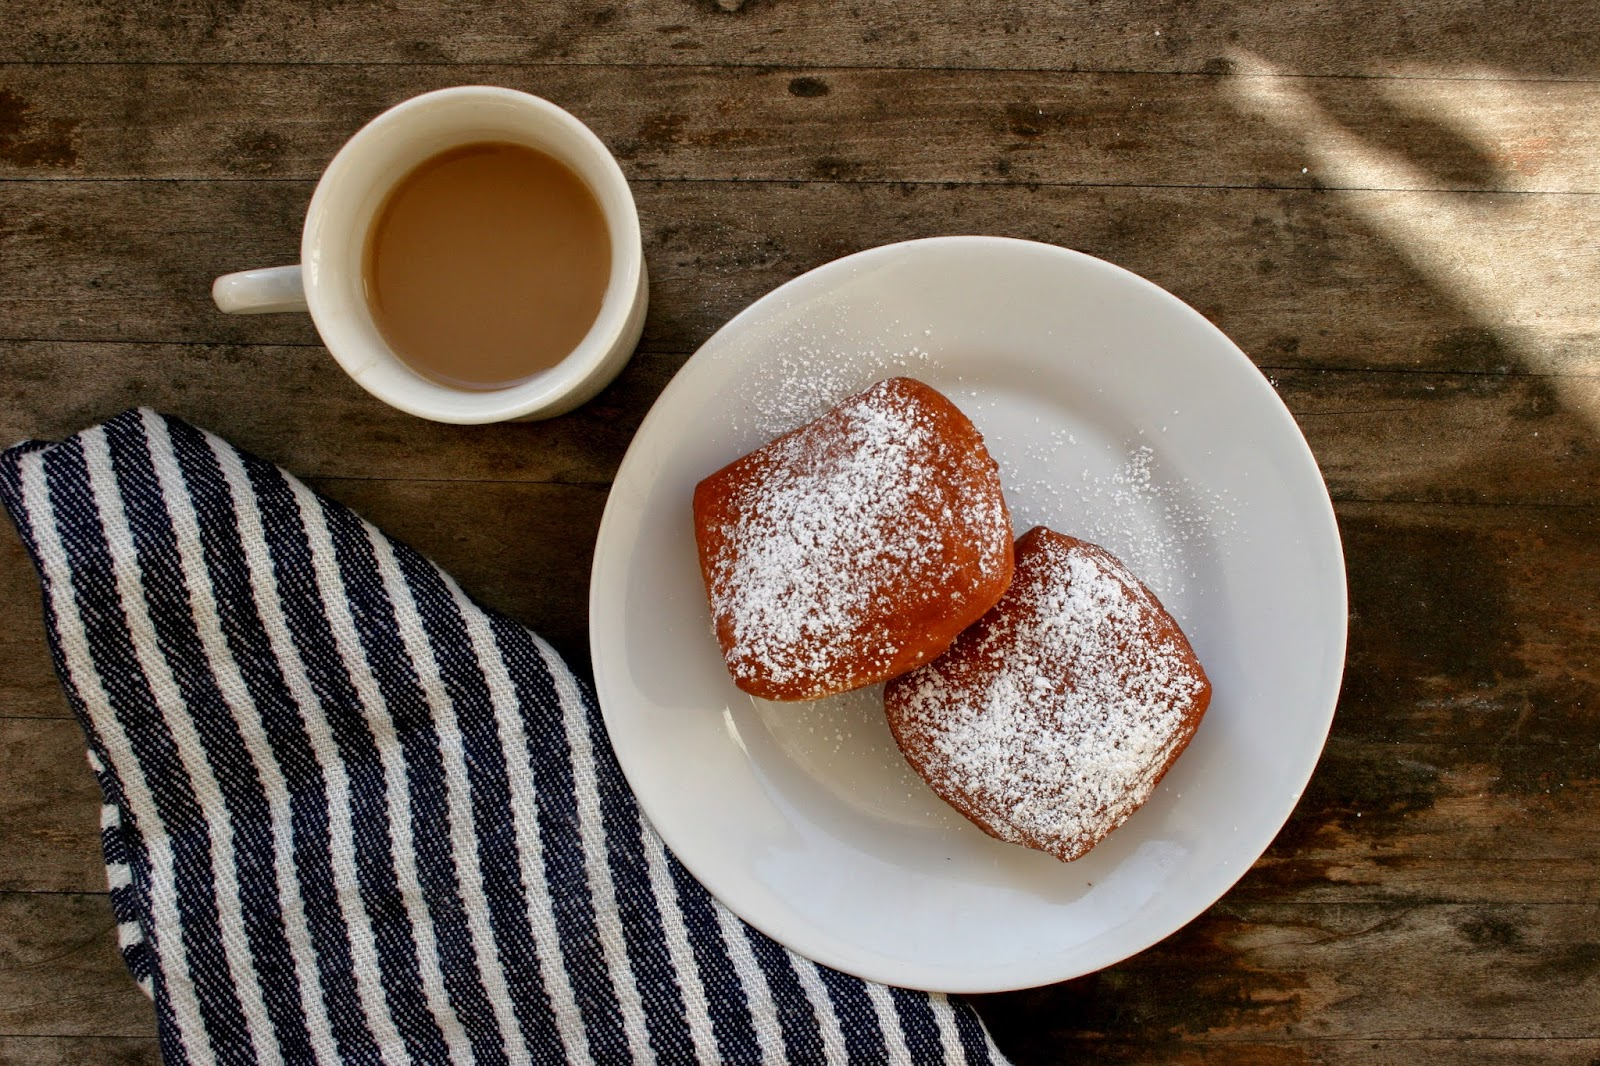 Homemade Beignets with Coffee